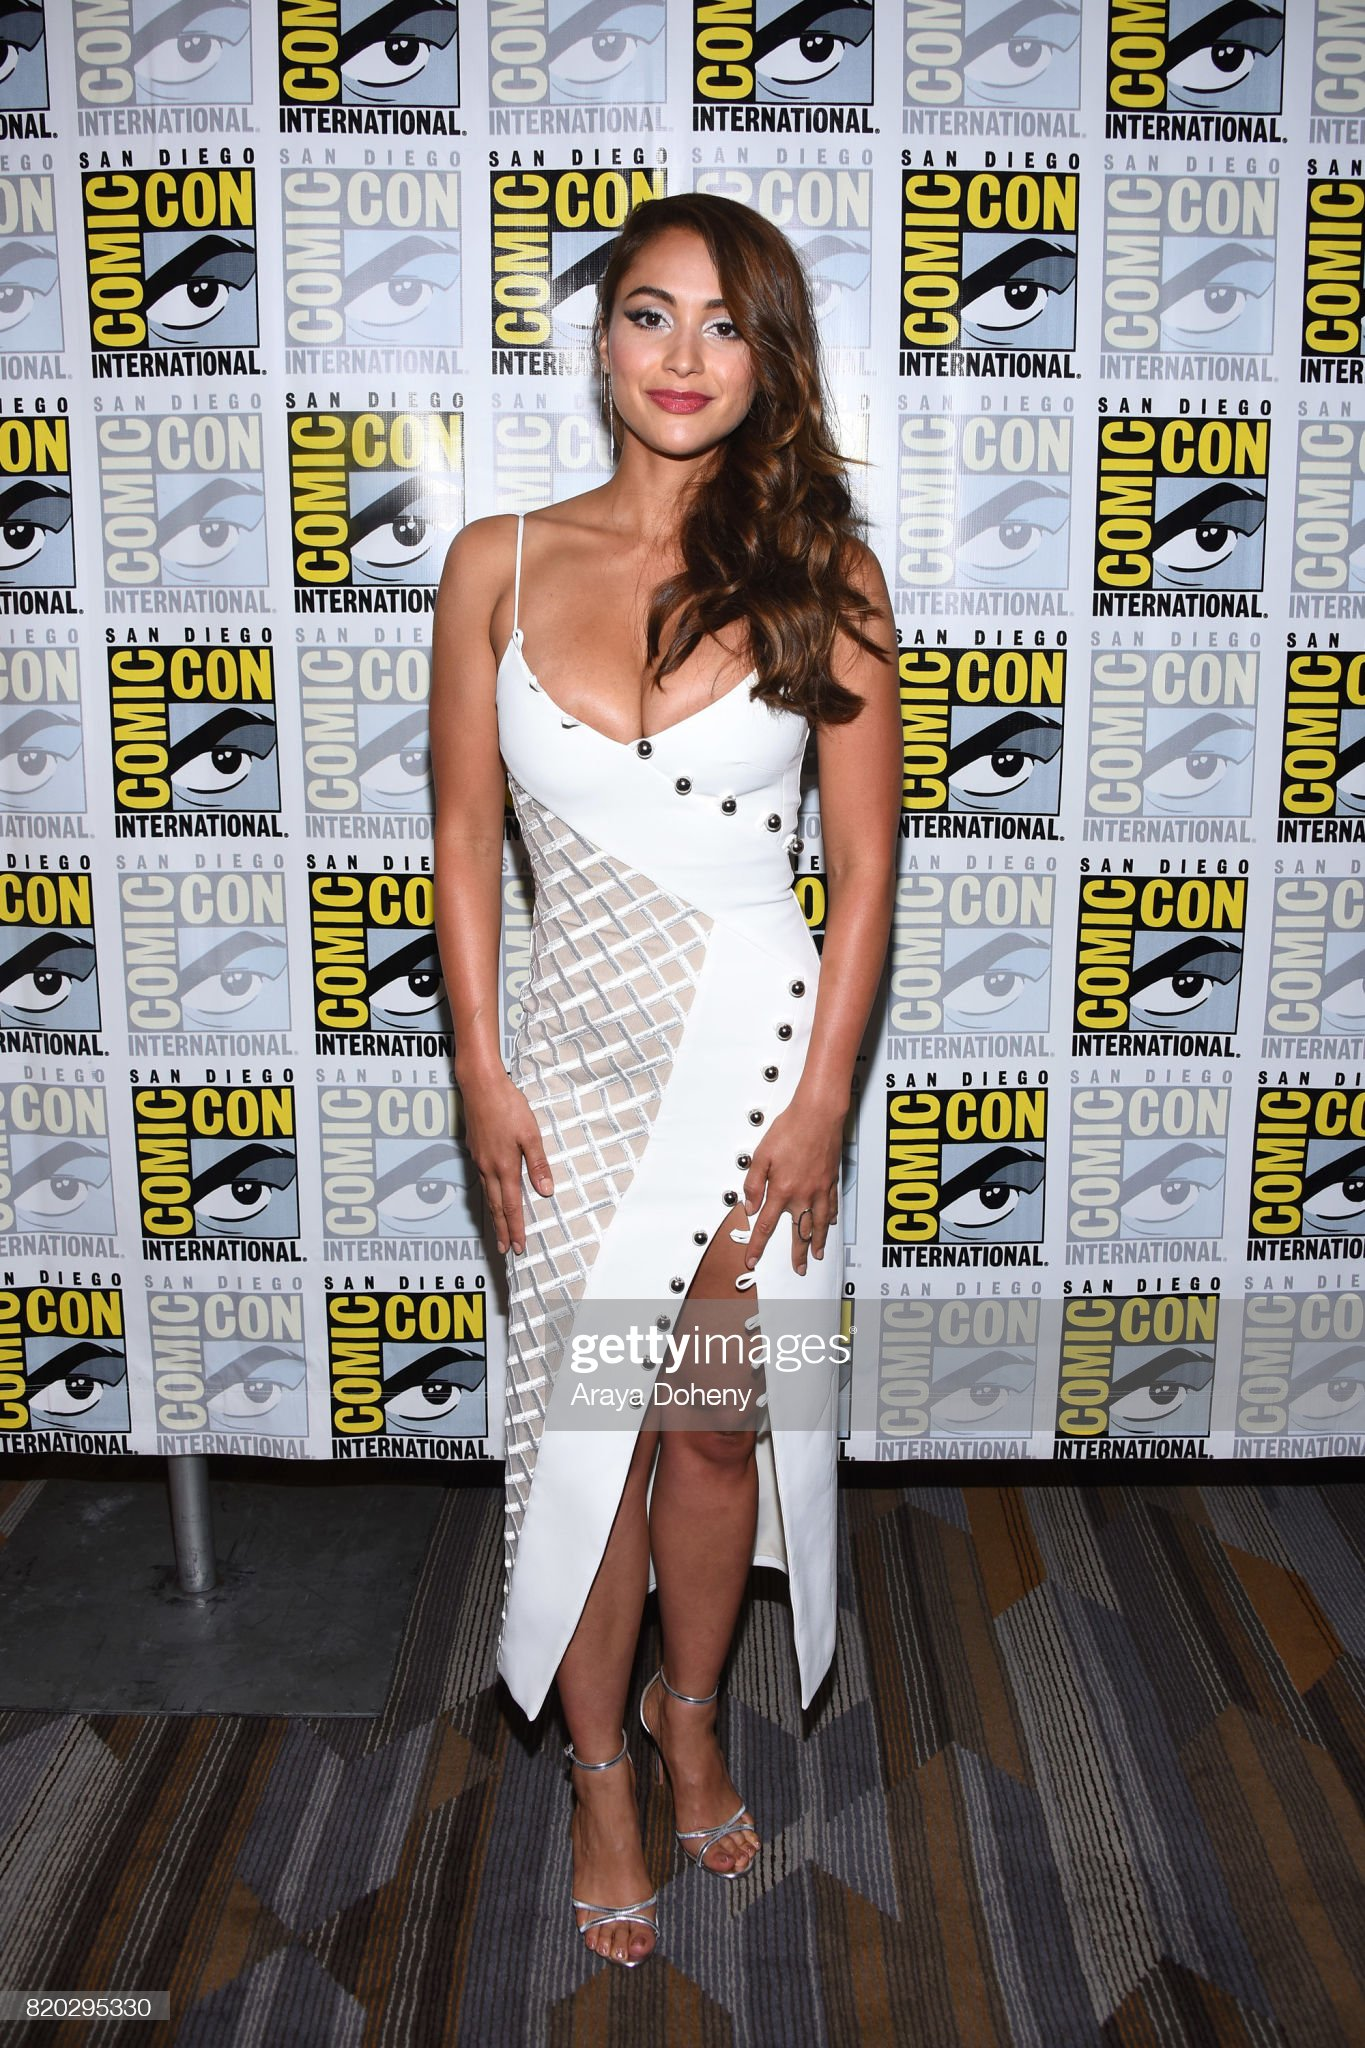 Top 80 Famosas Foroalturas Lindsey-morgan-attends-the-100-press-conference-at-comiccon-2017-on-picture-id820295330?s=2048x2048